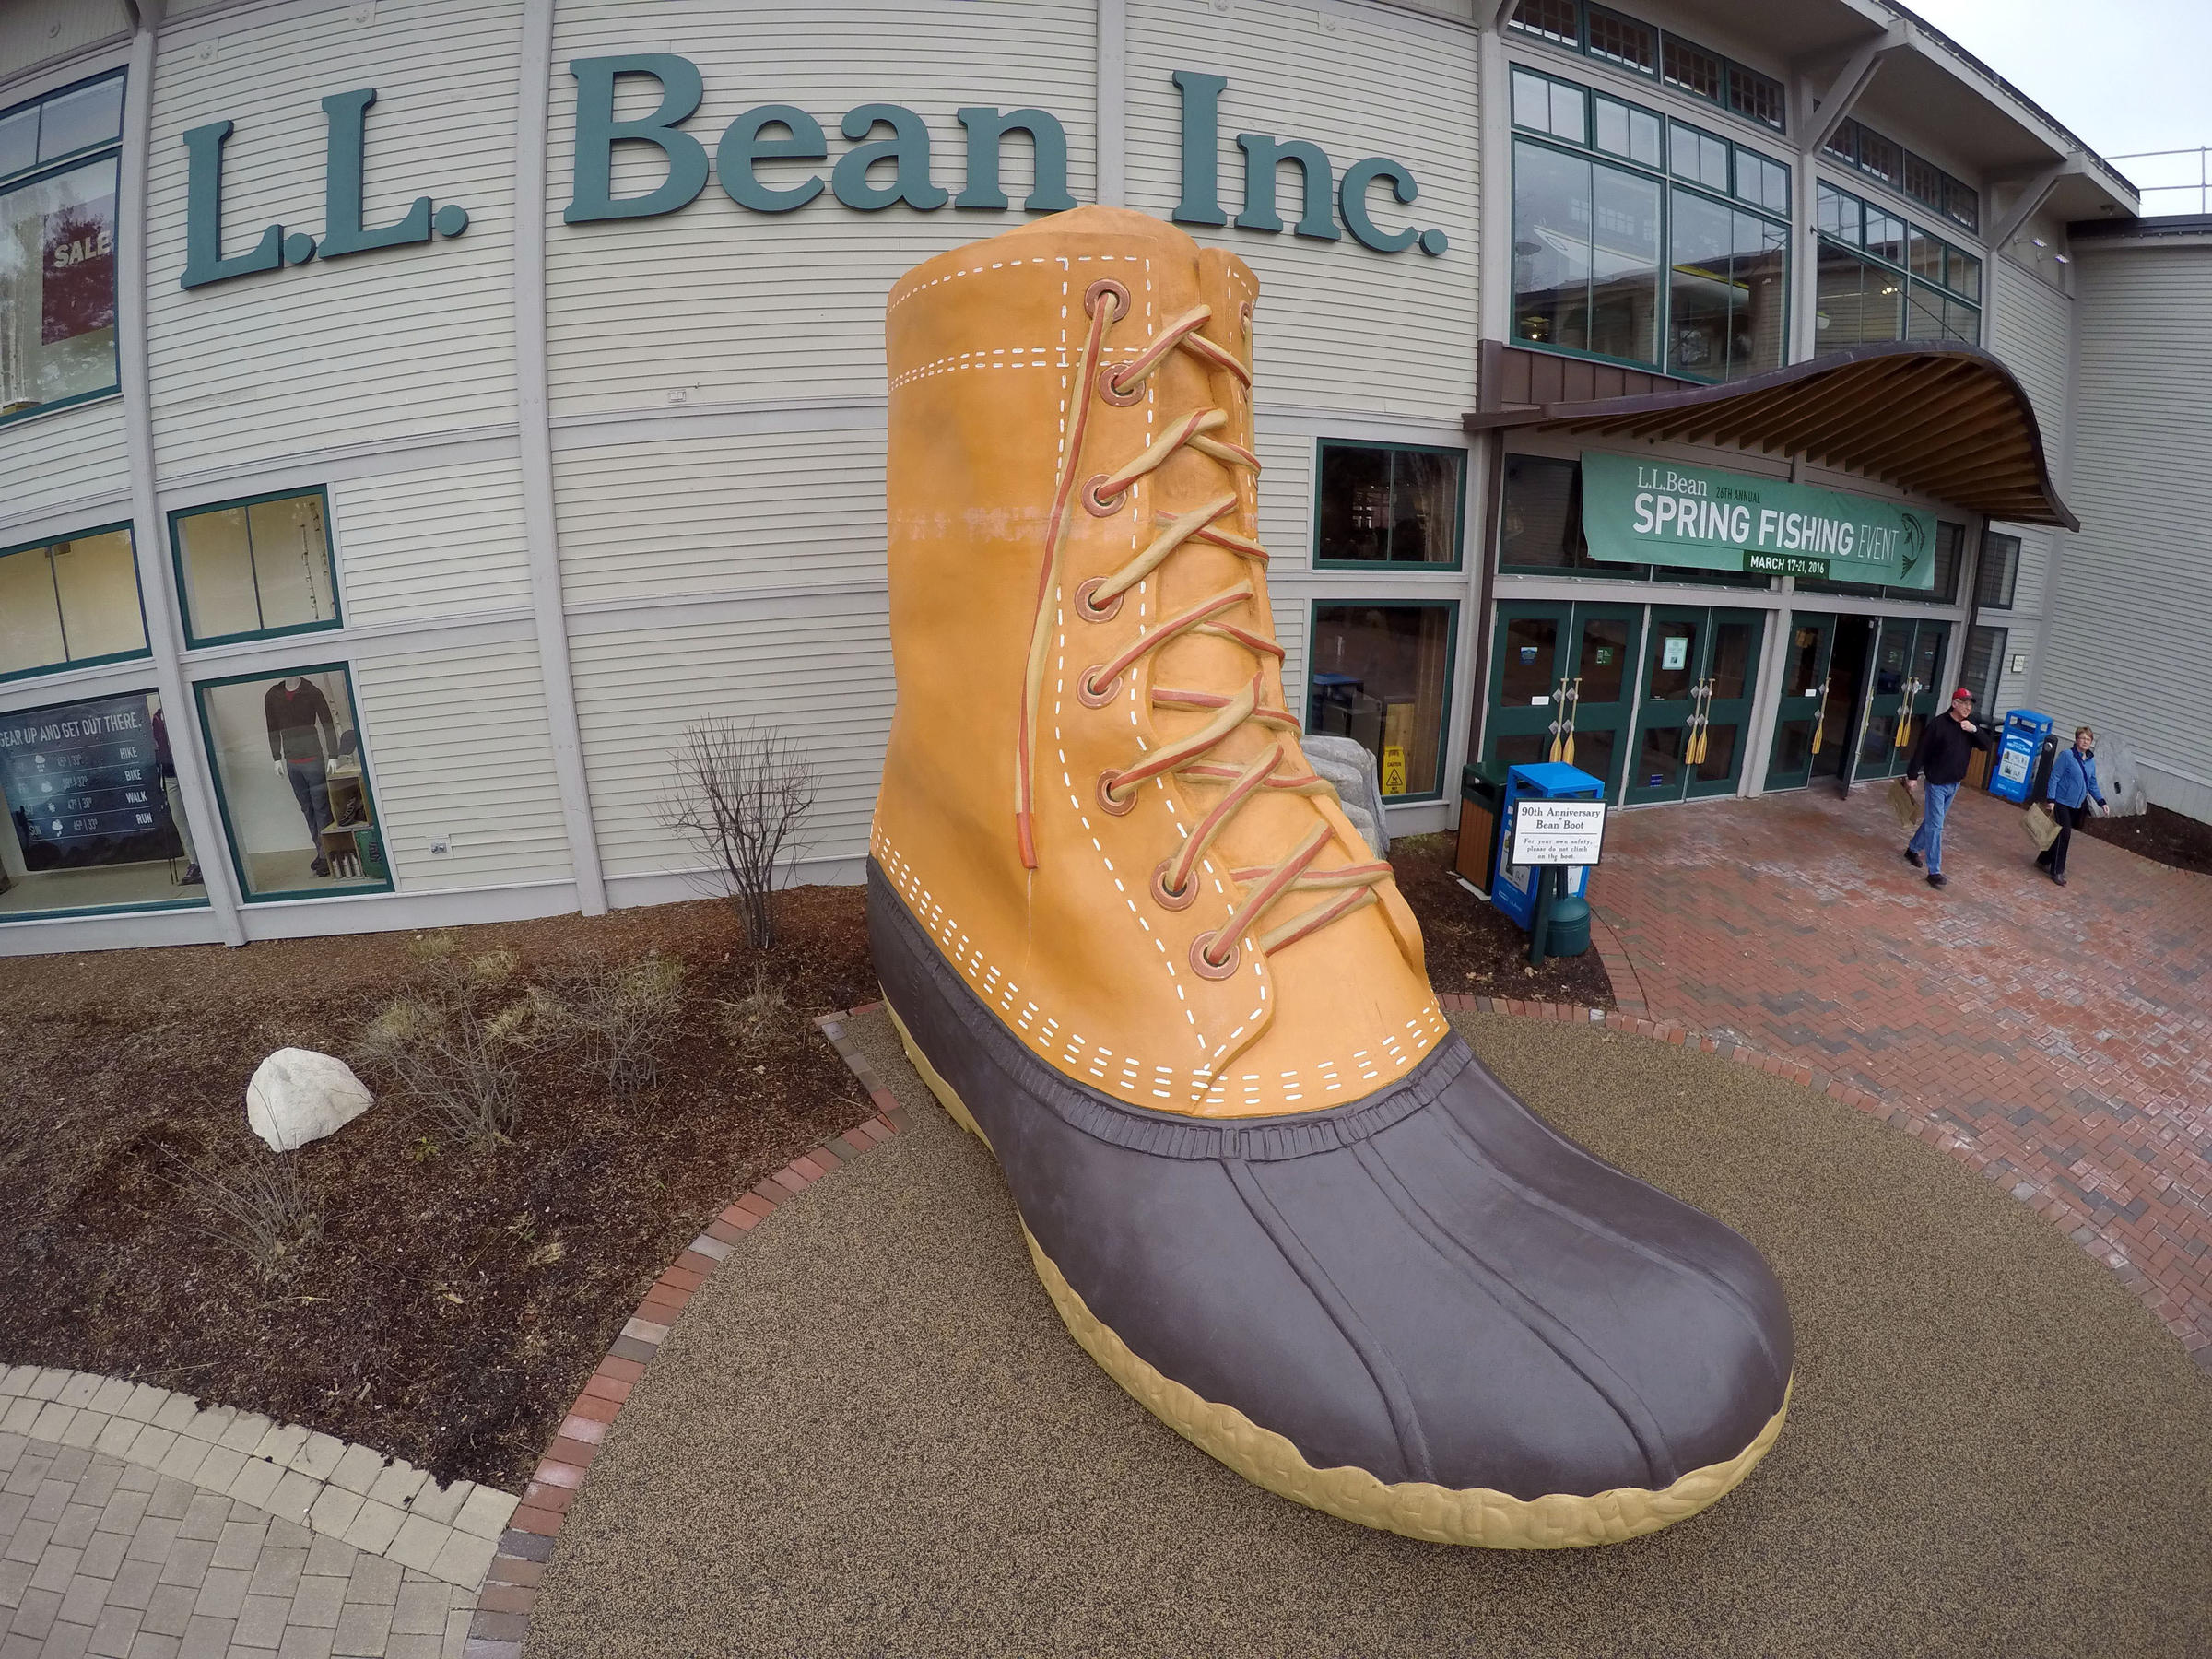 With one tweet, Trump makes L.L. Bean trendy